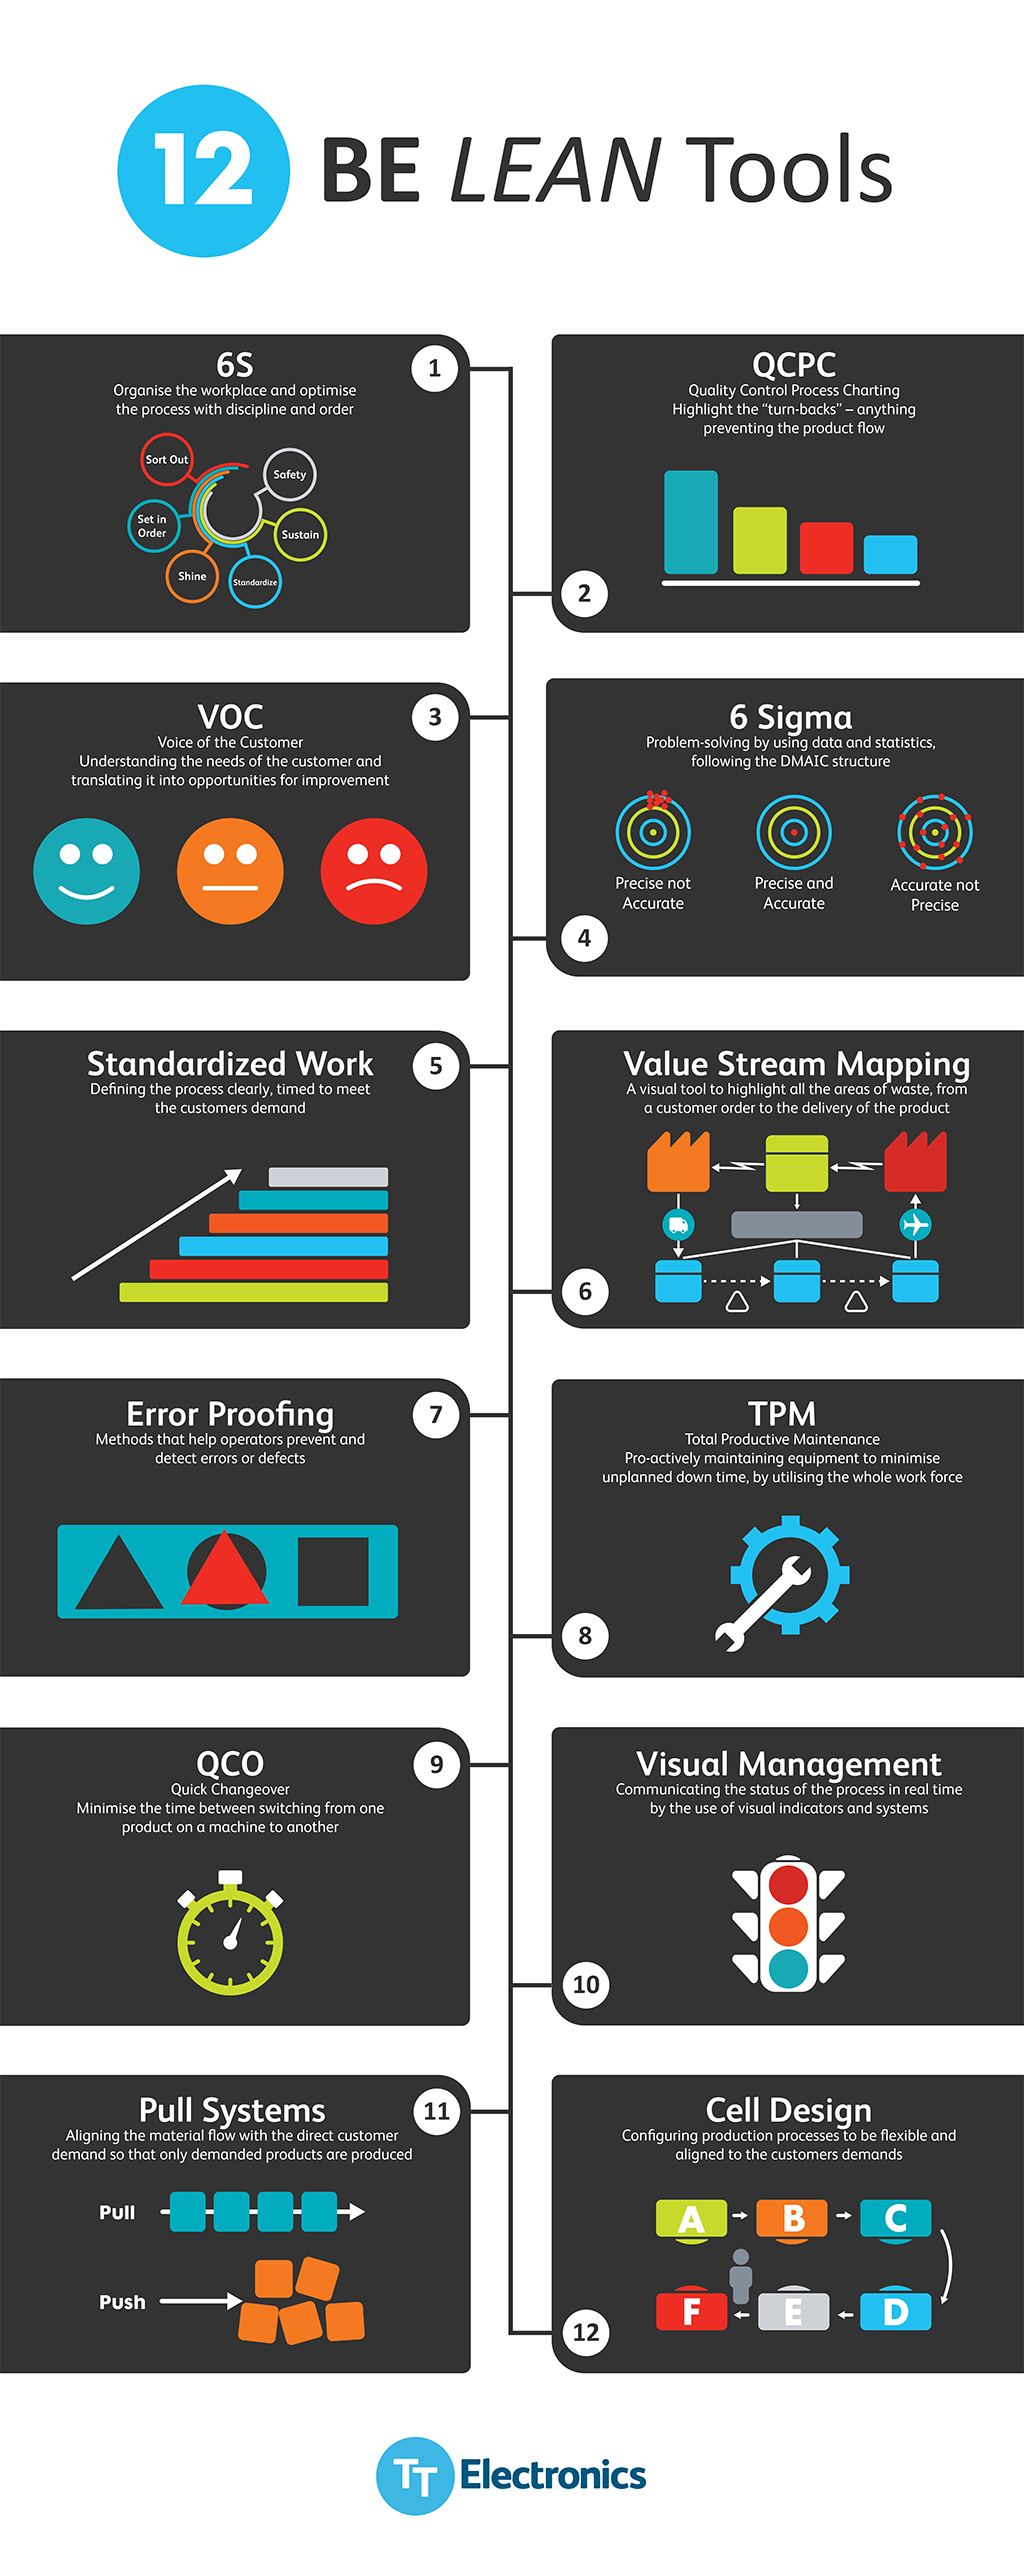 12-Be-Lean-Tools-Infographic